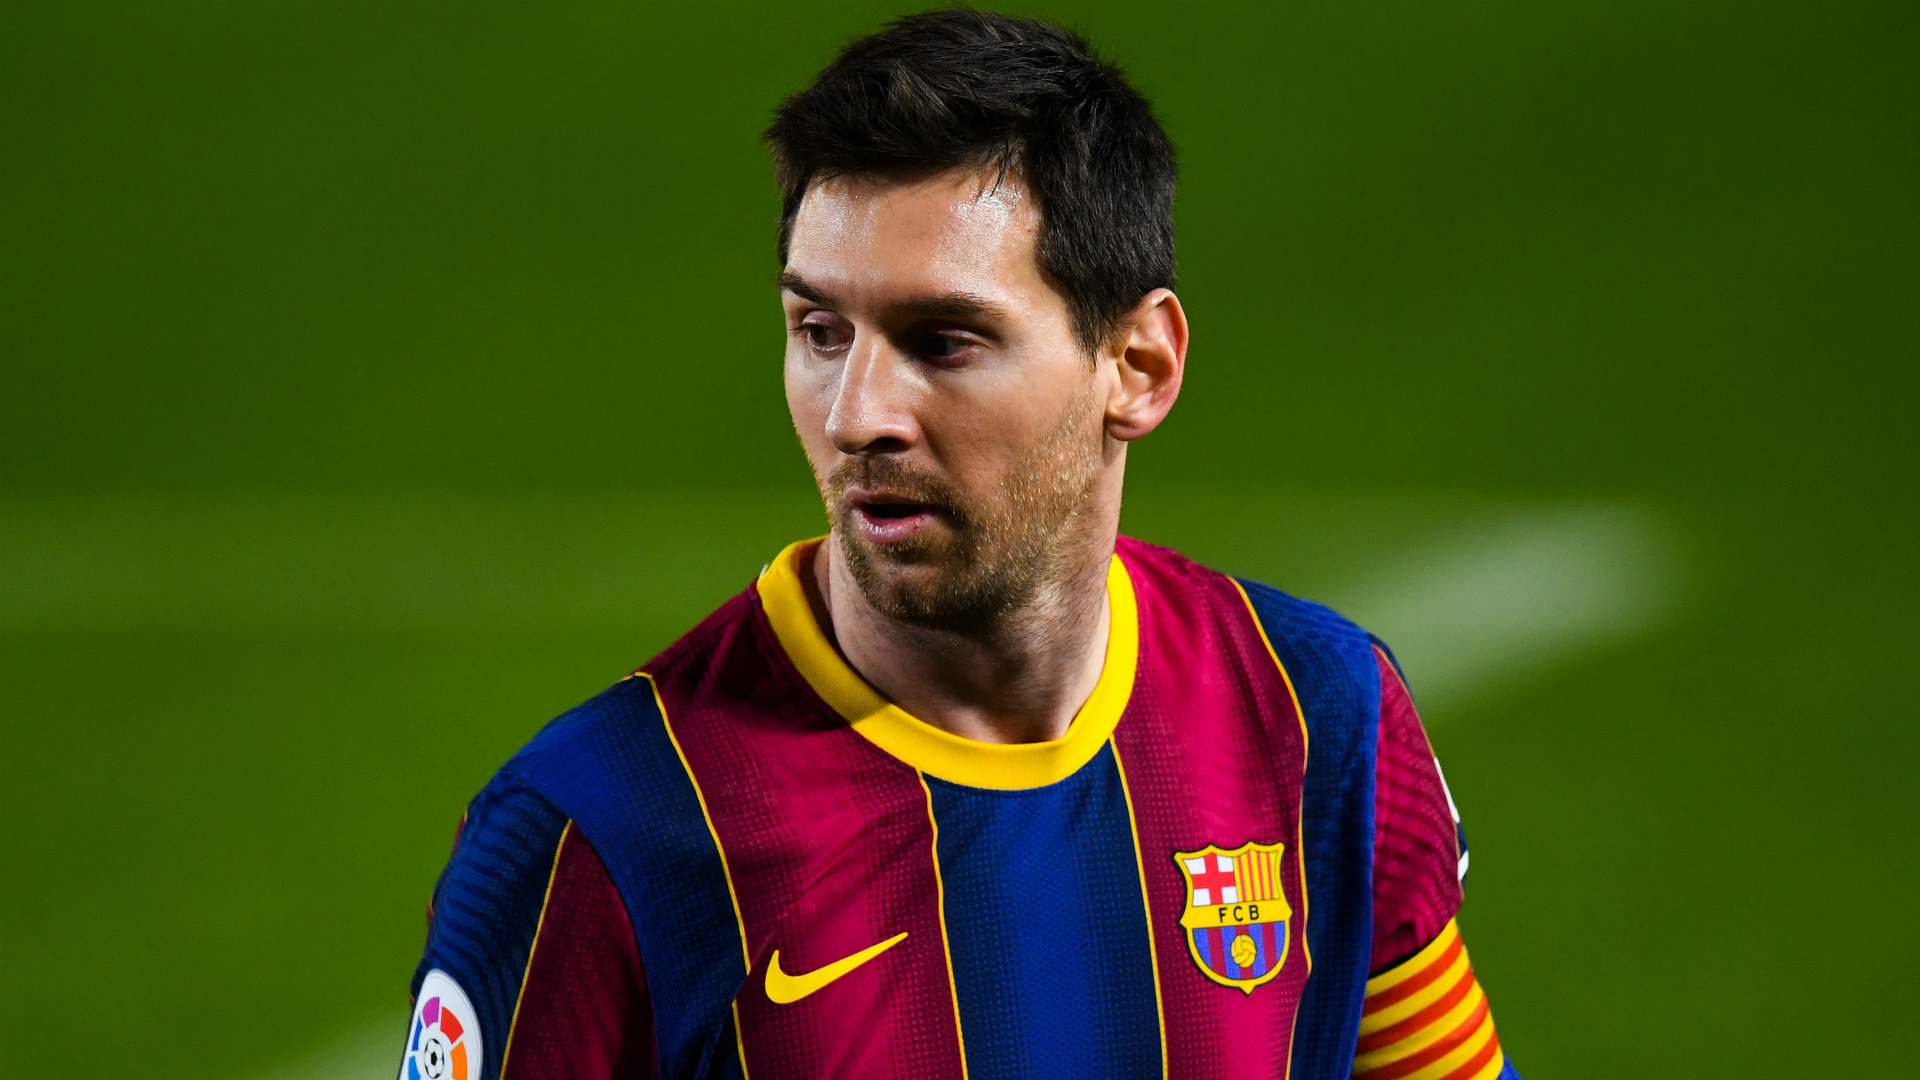 Lionel Messi not committing to Barcelona worries presidential hopeful Benedito